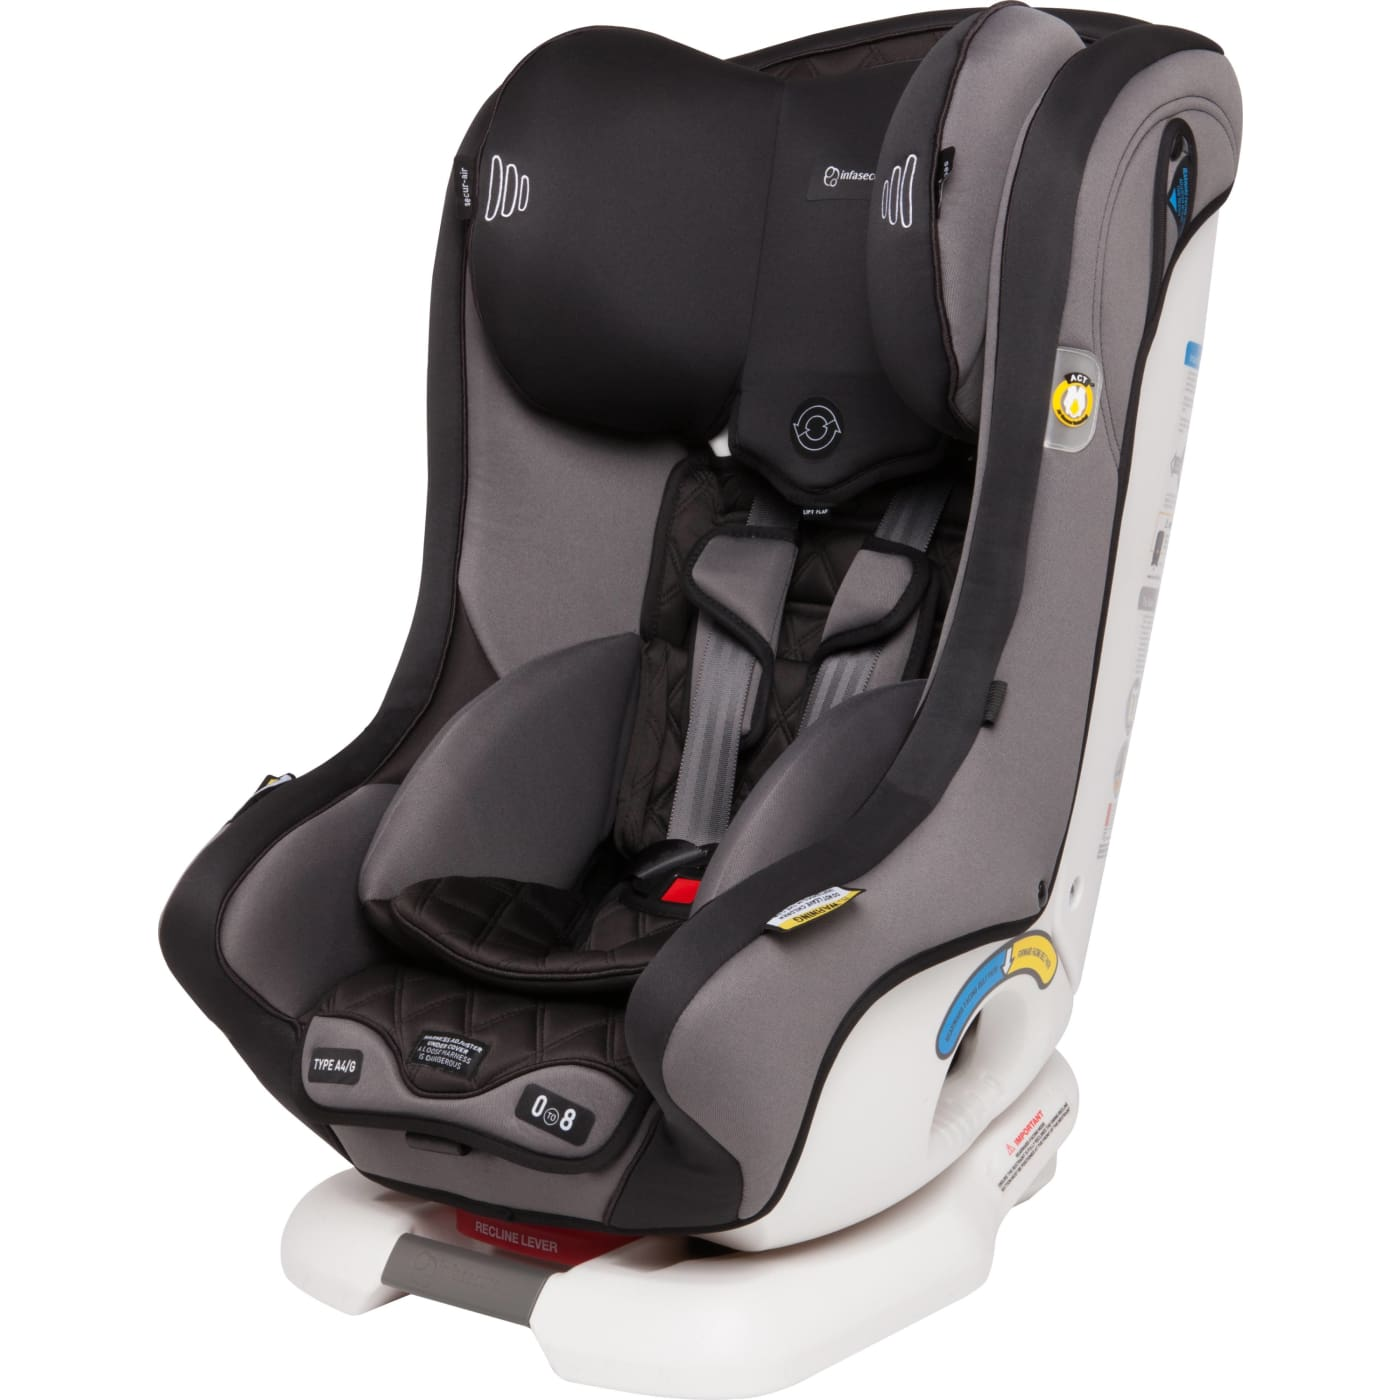 InfaSecure Achieve Premium Harnessed Convertible Car Seat 0-8YR - Night - 0-8YRS / Night - CAR SEATS - HARNESSED CONV CAR SEATS (0-8YR)